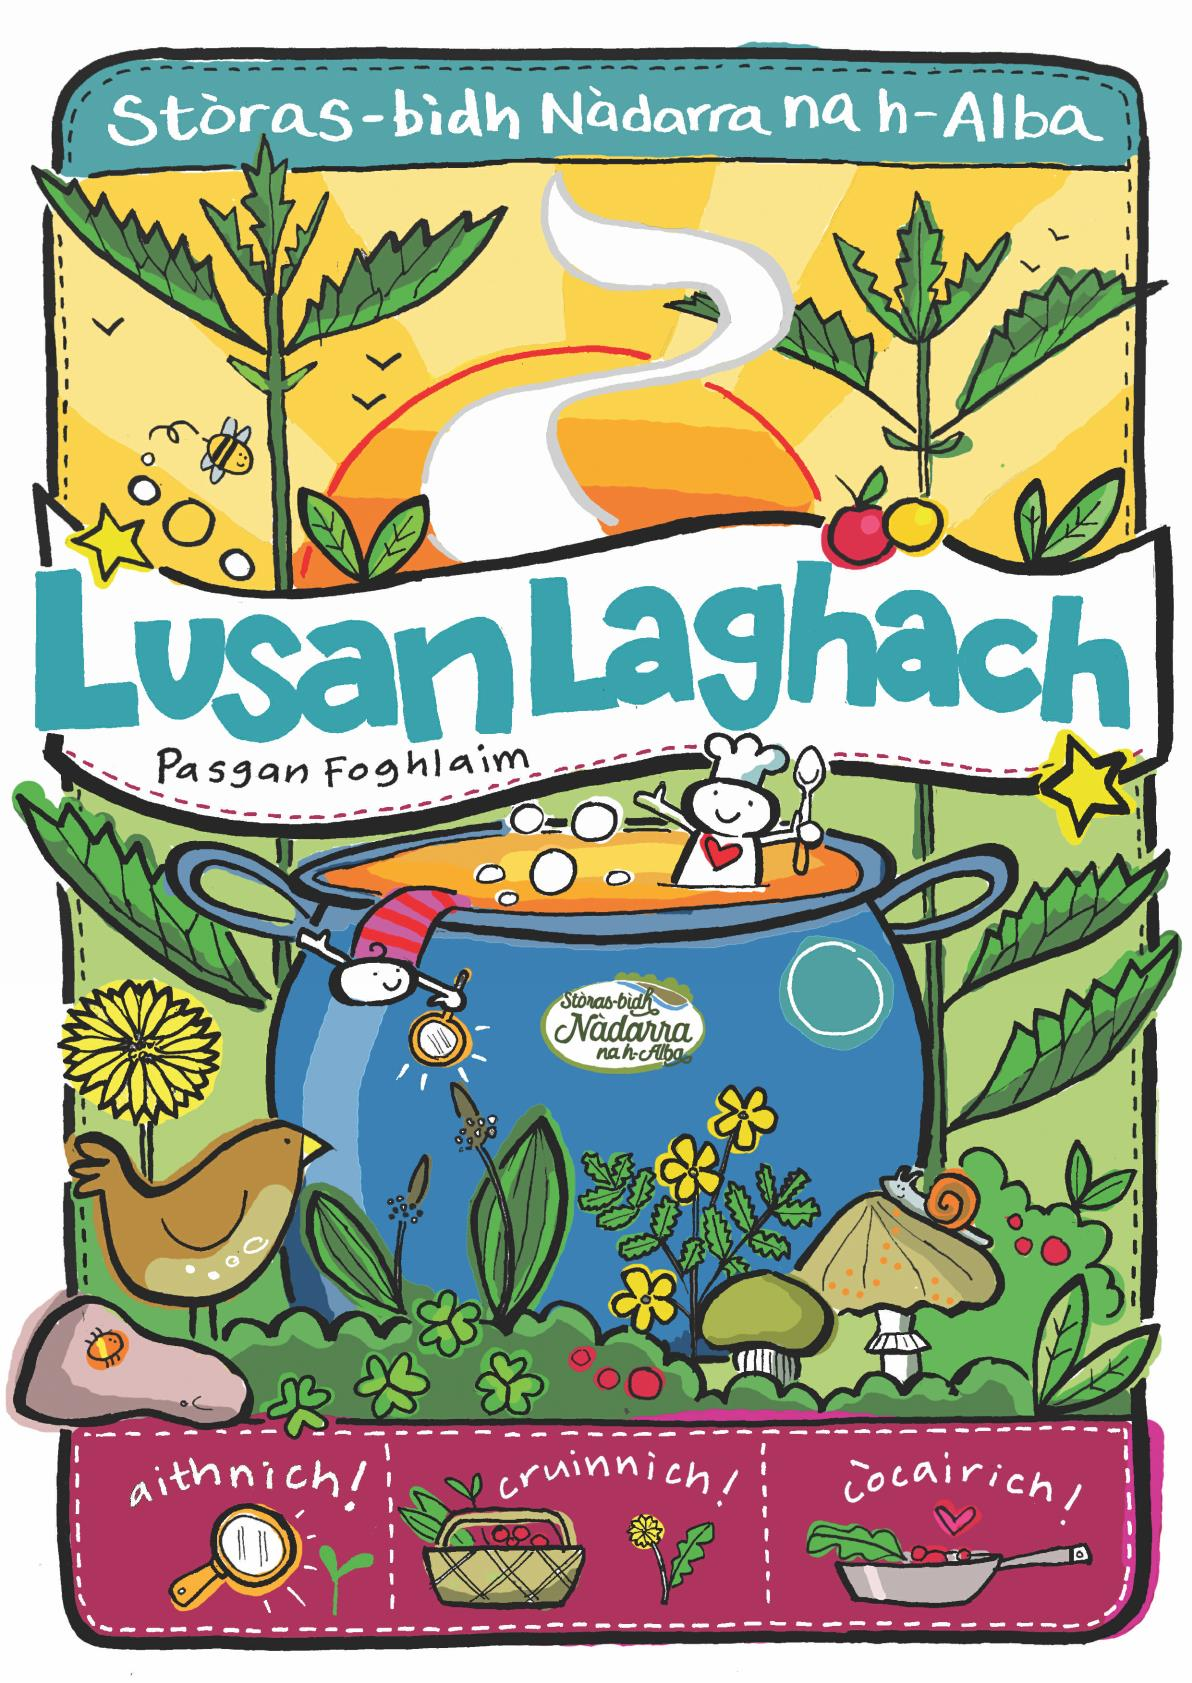 Lusan laghach - plant IDs - front cover